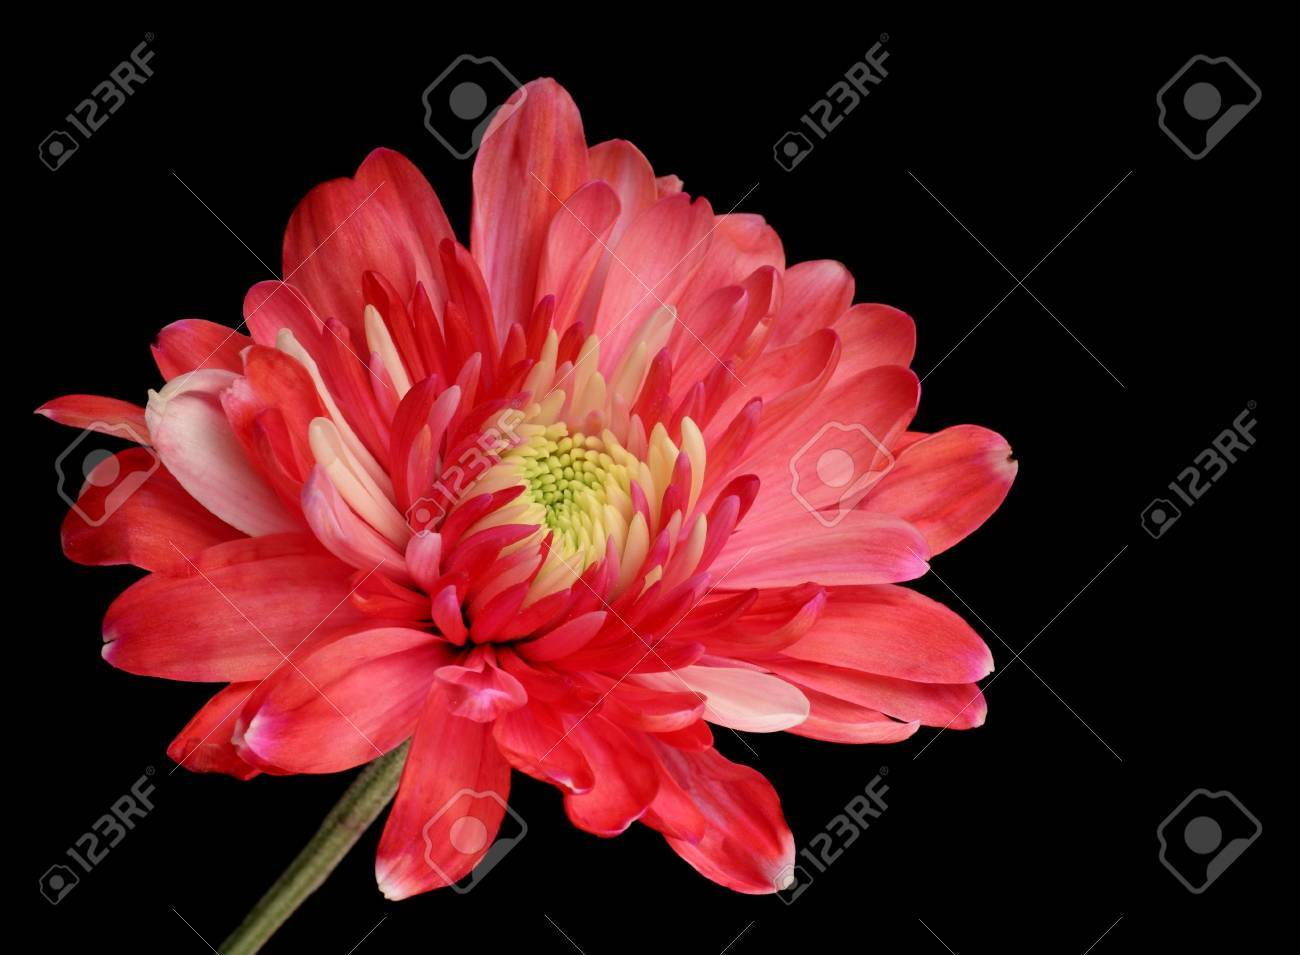 Red chrysanthemum isolated on a black background Stock Photo - 7266294